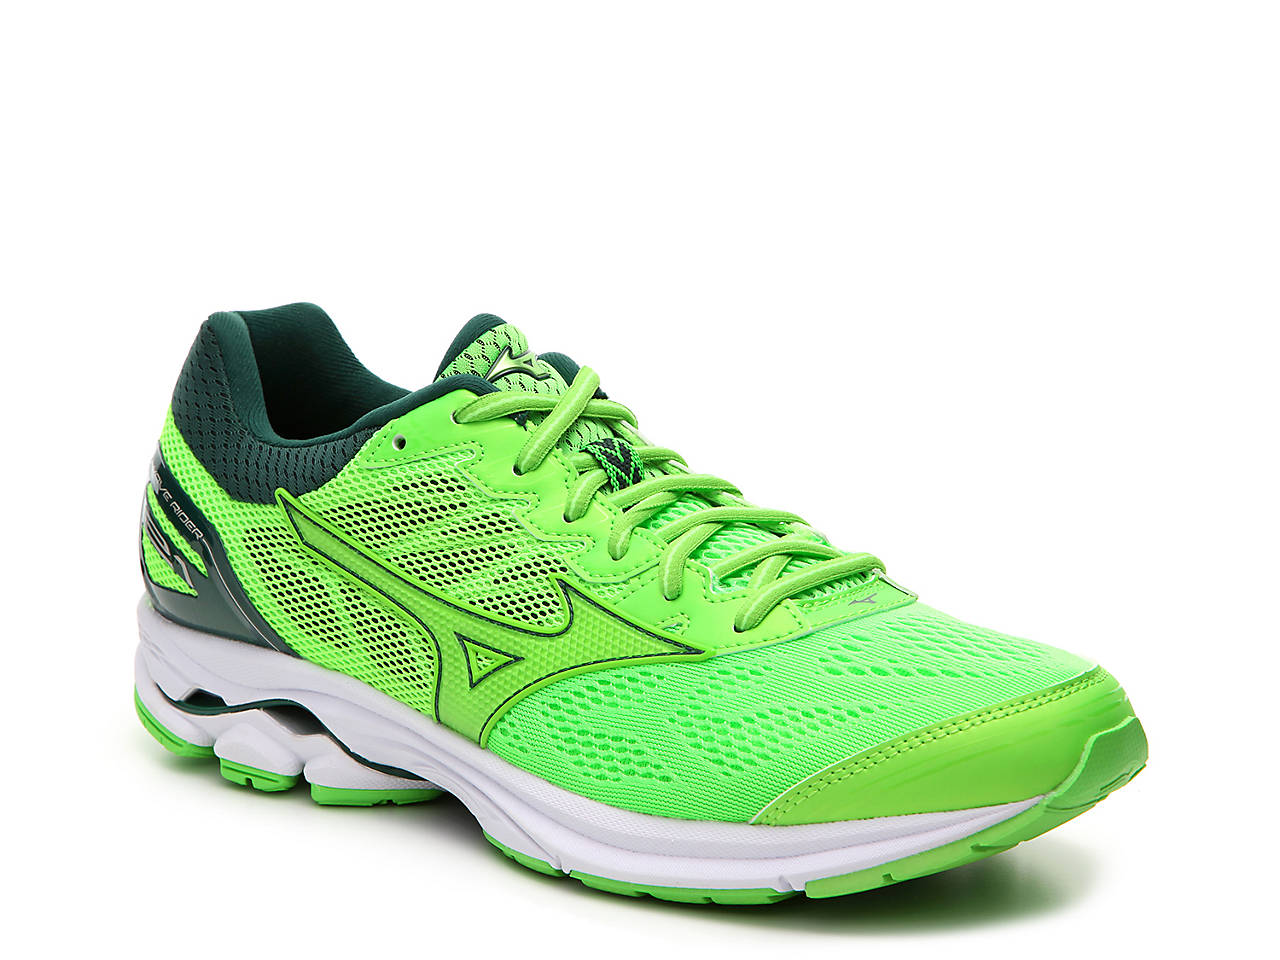 d20568d937a9 Mizuno Wave Rider 21 Performance Running Shoe - Men's Men's Shoes | DSW